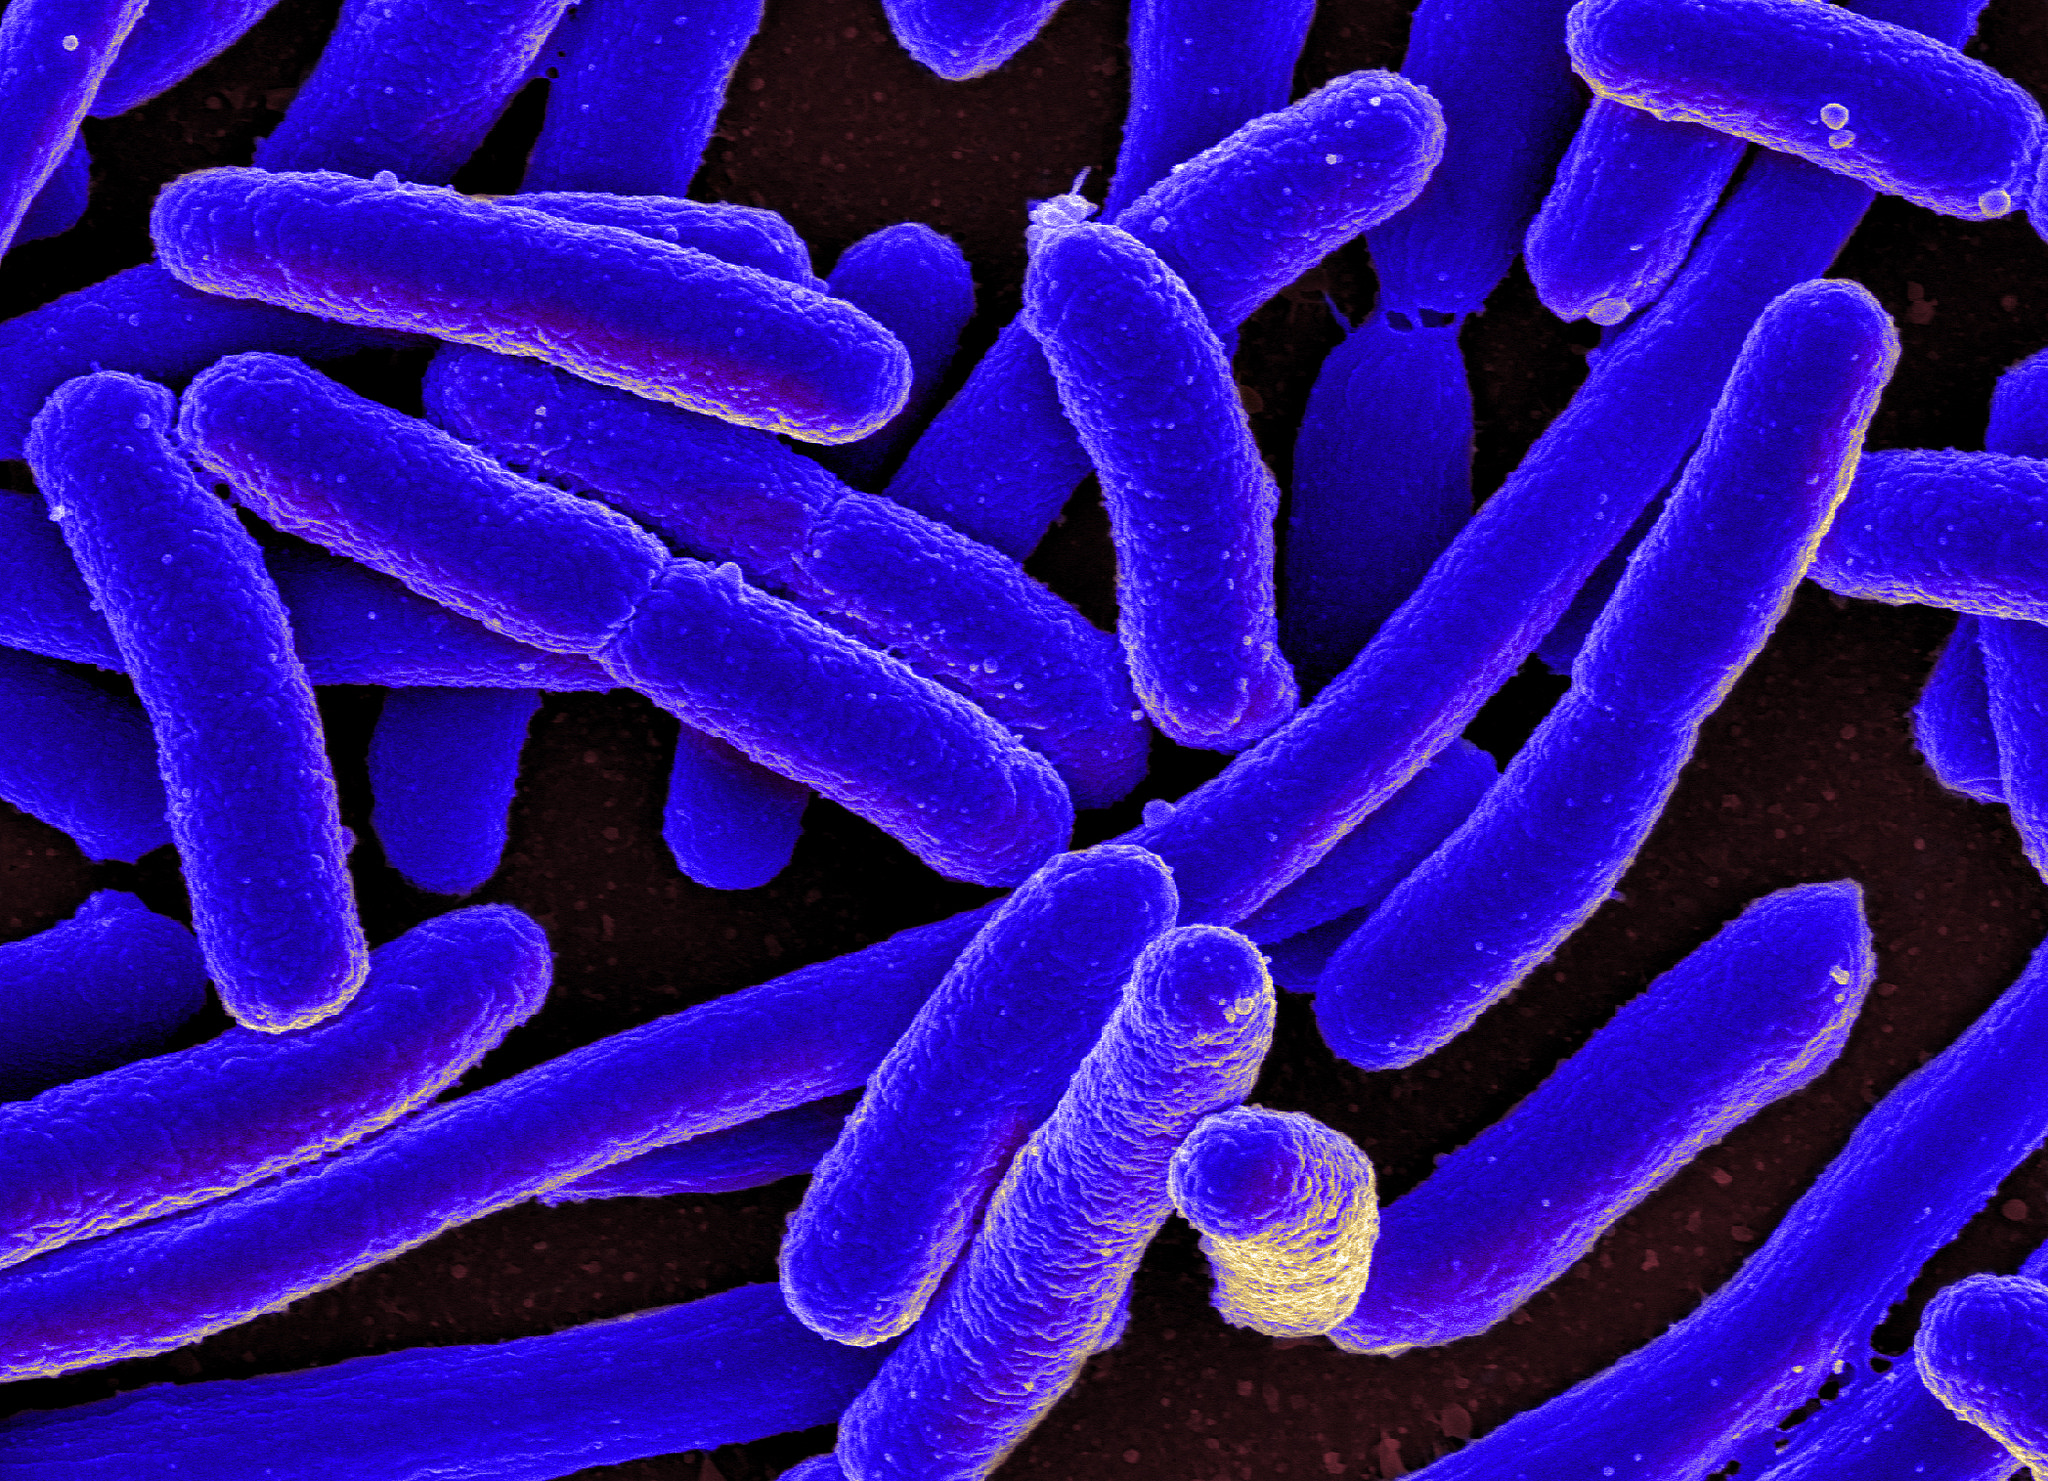 Colorized scanning electron micrograph of E coli grown in culture and adhered to a cover slip. Image credit: Flickr.com user NIAID